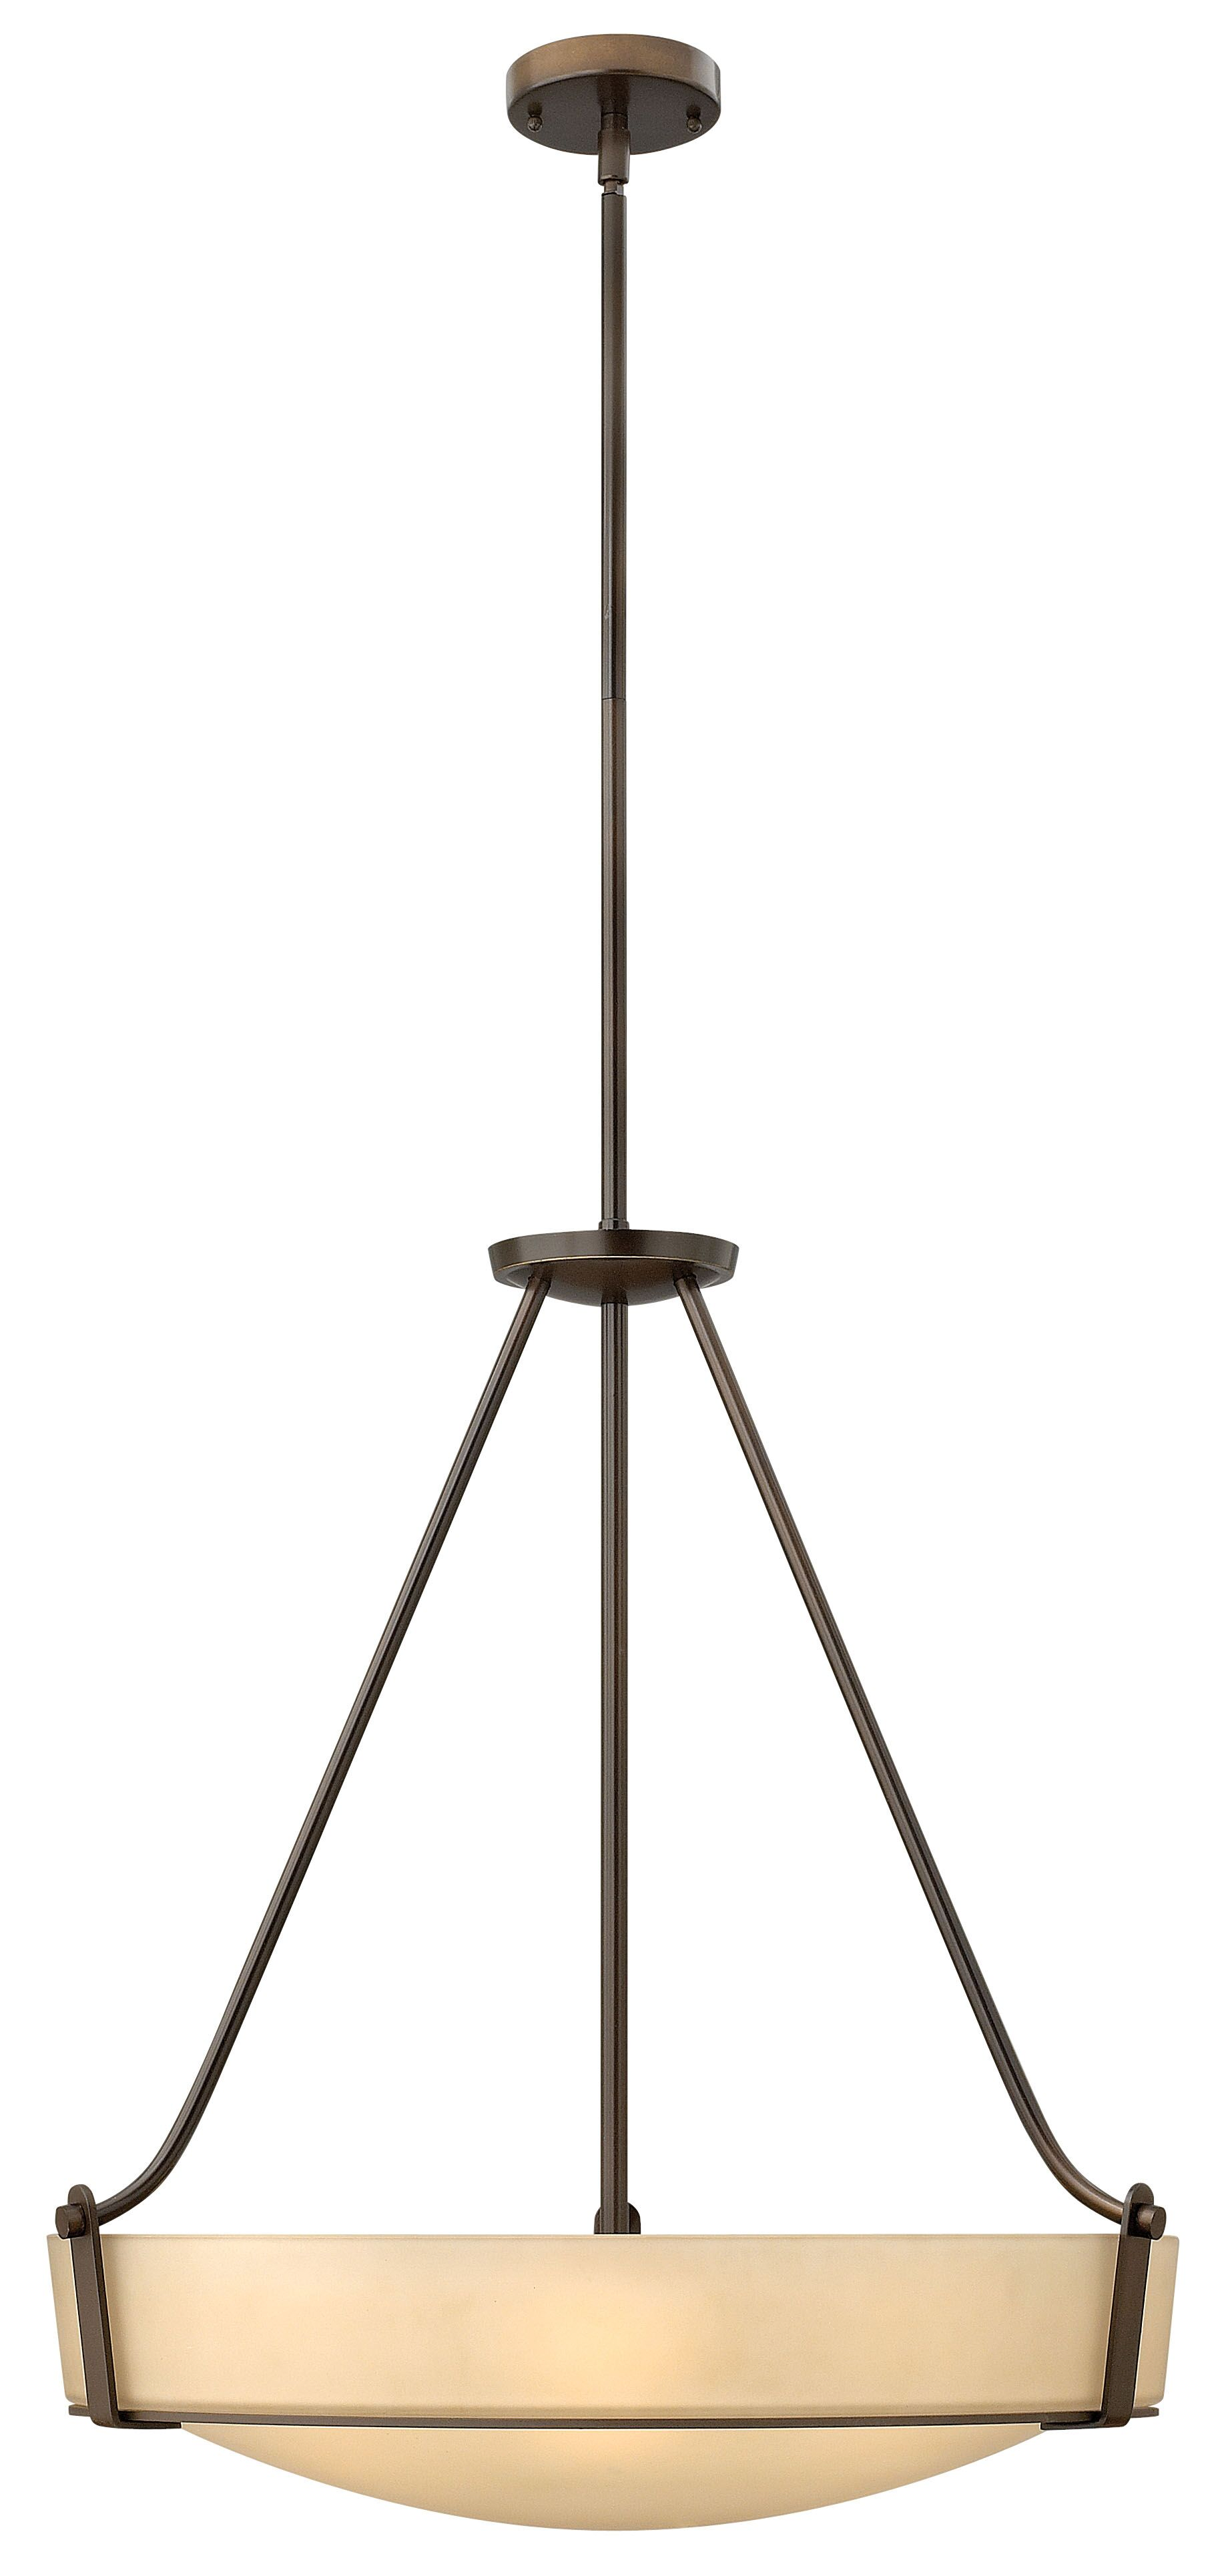 Hathaway 5-Light Bowl Pendant Shade Color: White, Finish: Olde Bronze, Bulb Type: 100W Medium